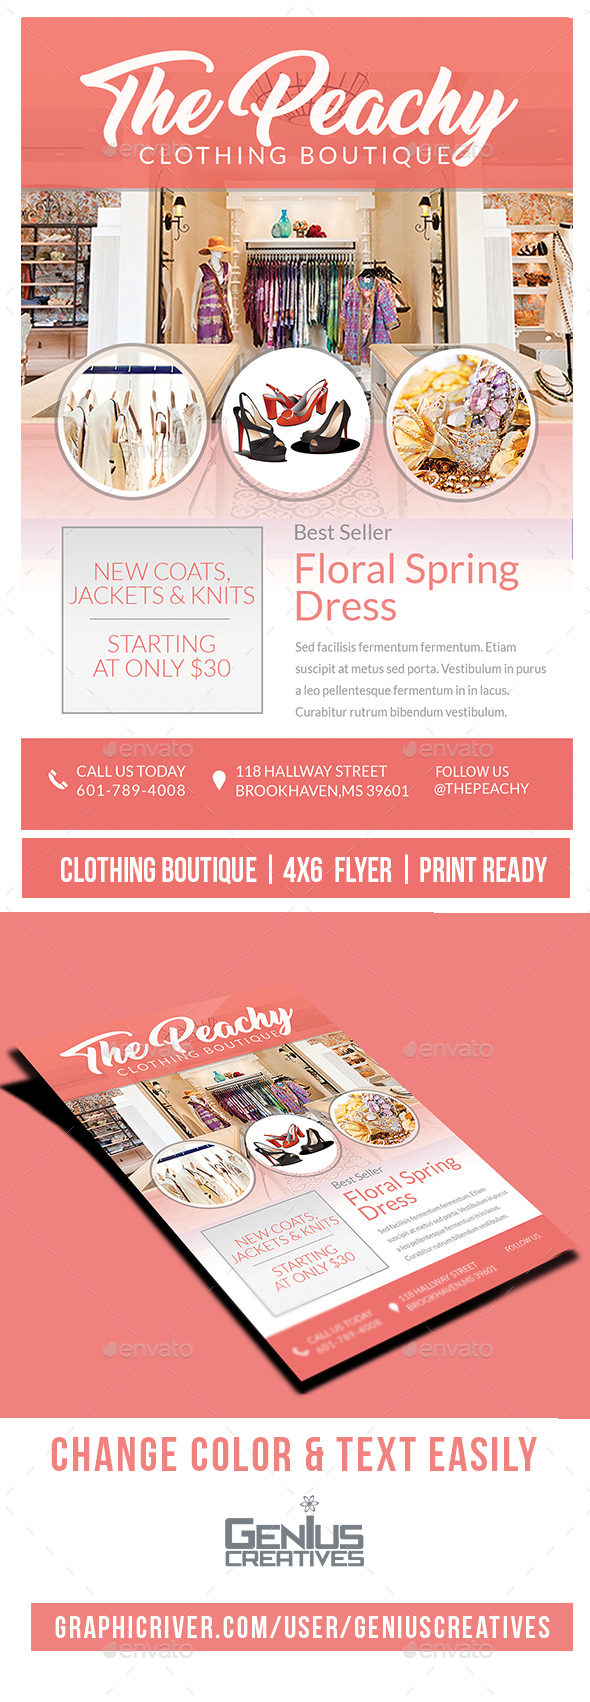 Fashion Clothing Boutique Flyer - Commerce Flyers